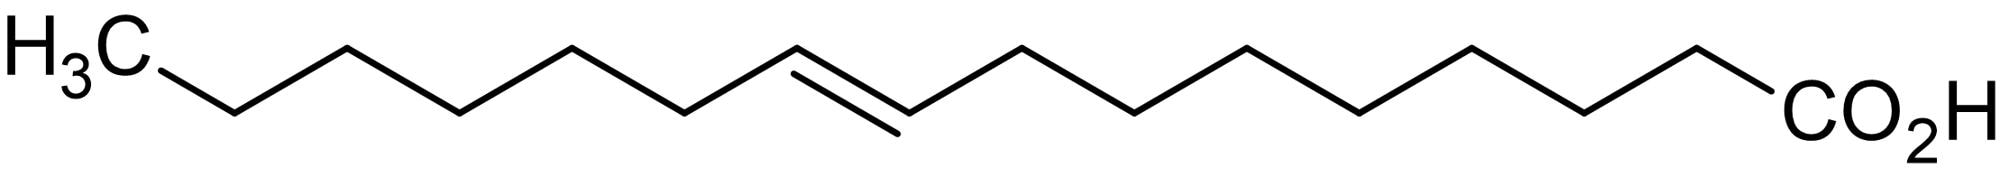 Chemical Structure - trans-9-Hexadecenoic acid, Monounsaturated fatty acid (ab143884)